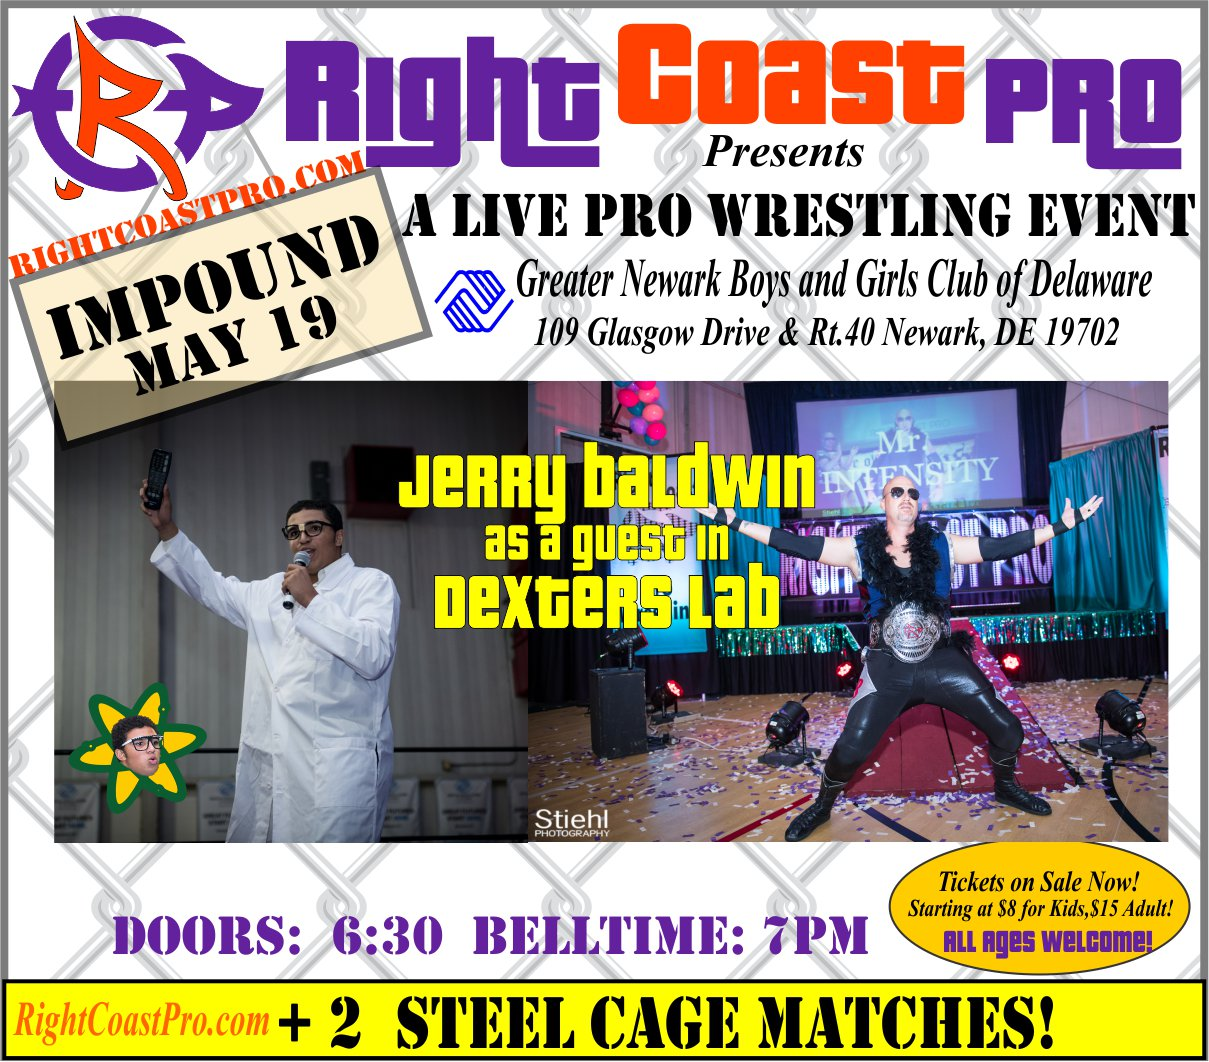 RCP45 Right Coast Pro Wrestling Delaware Event JerryBaldwinVSDexter